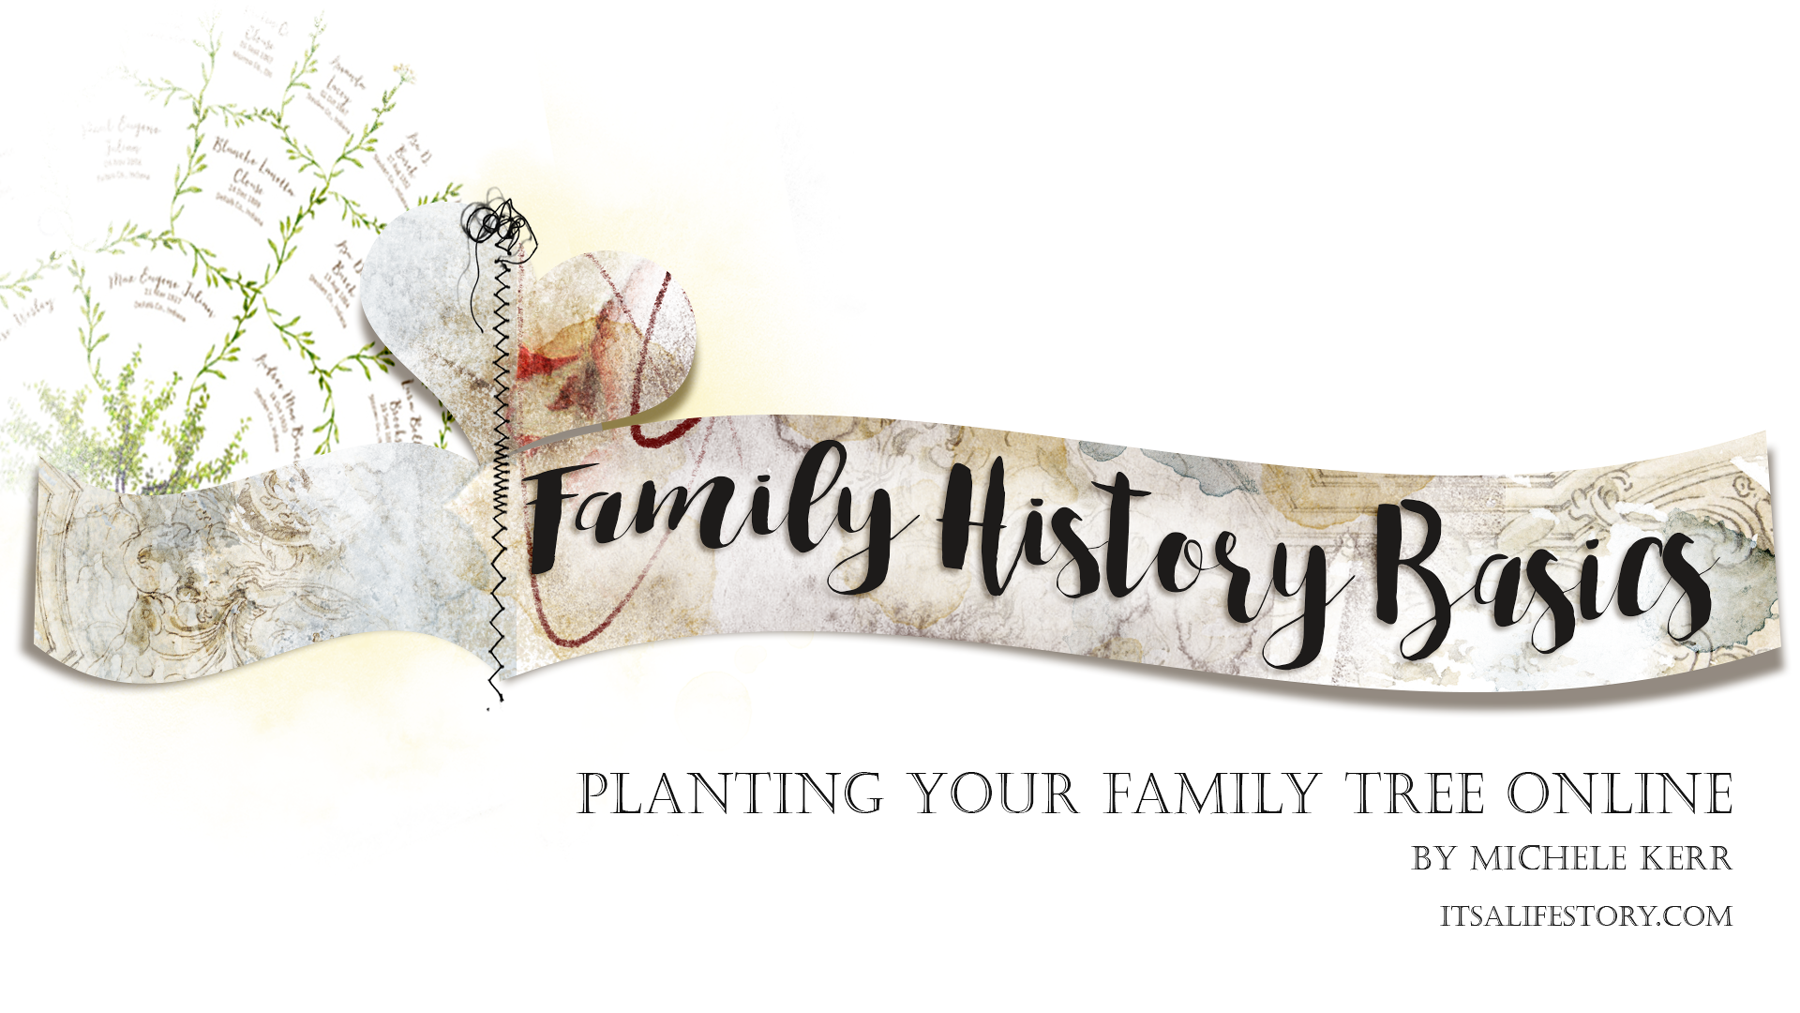 ItsALifeStory.com _ FAMILY HISTORY BASICS - Planting Your Family Tree Online